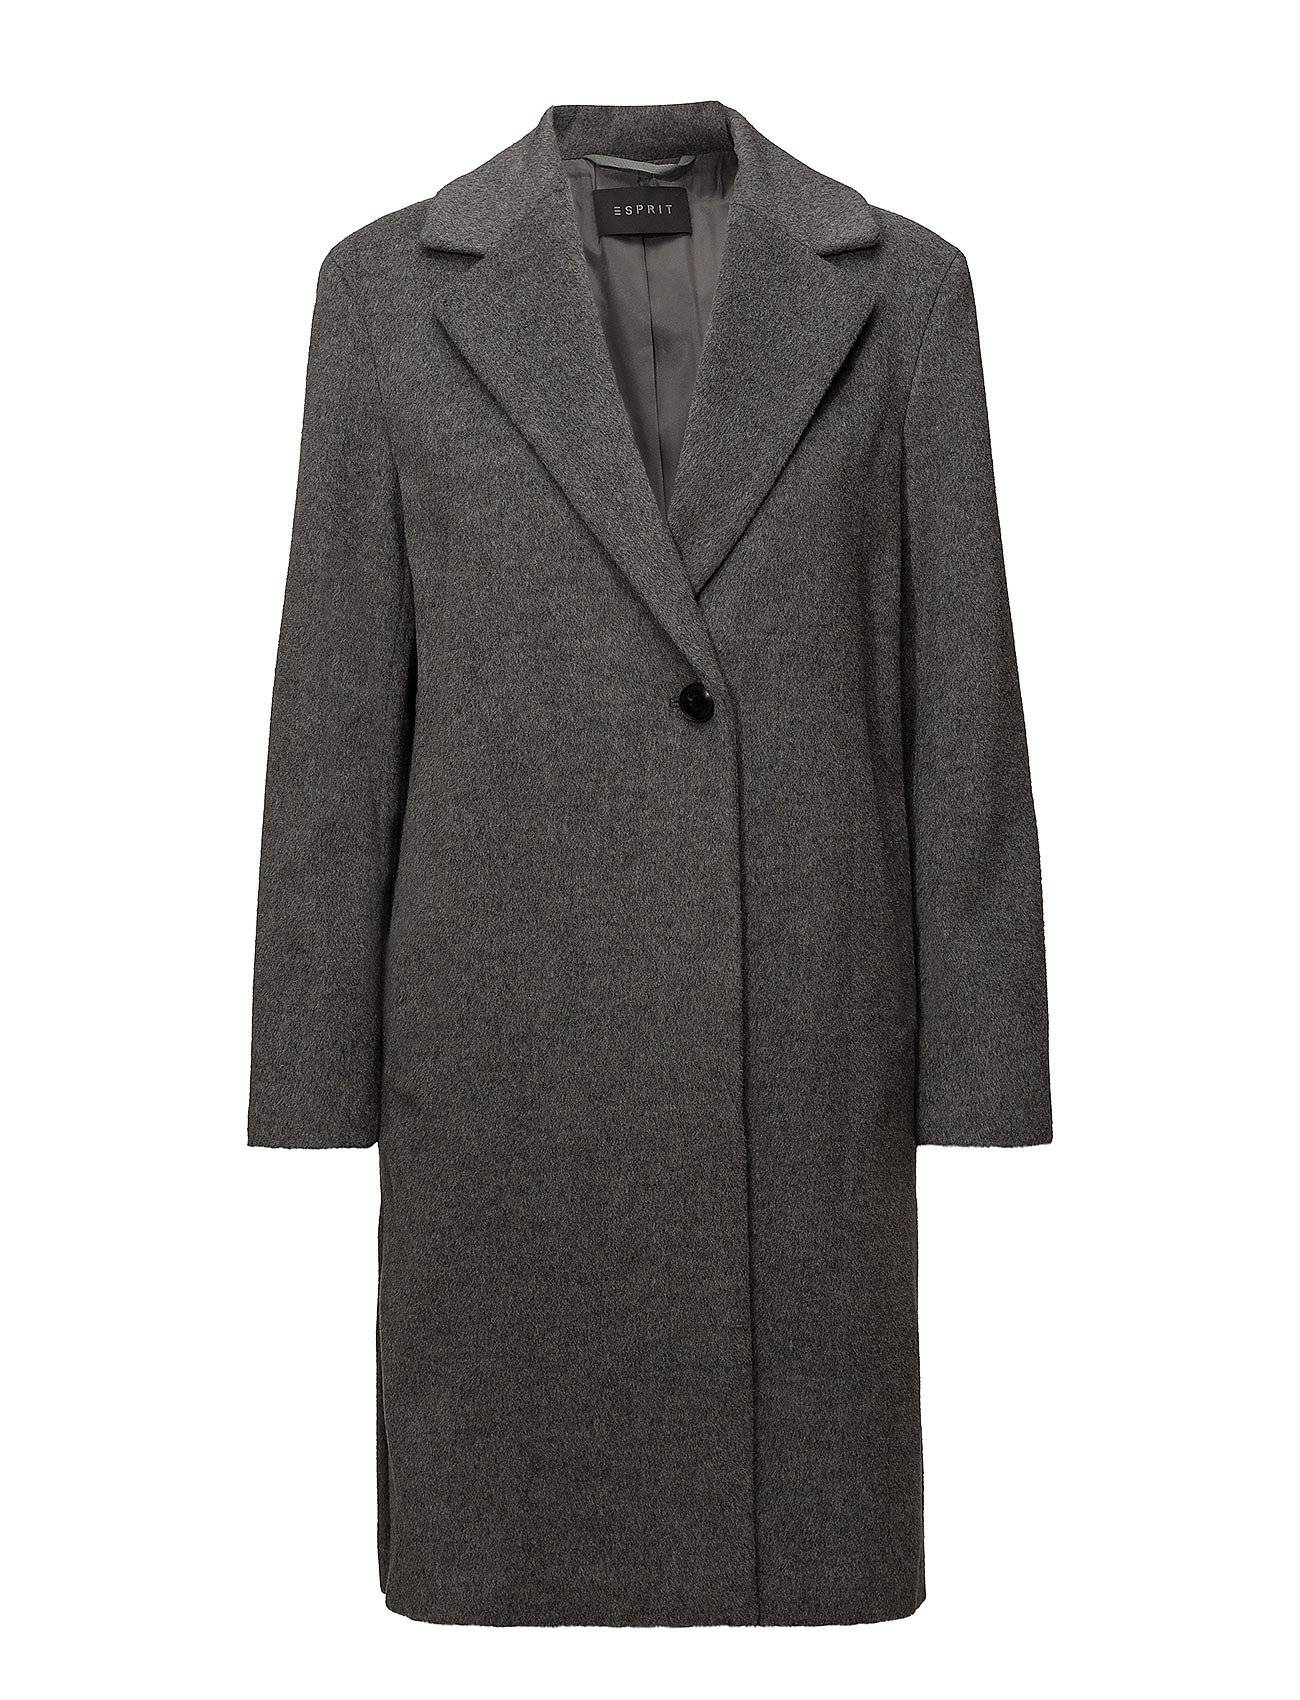 Esprit Collection Coats Woven